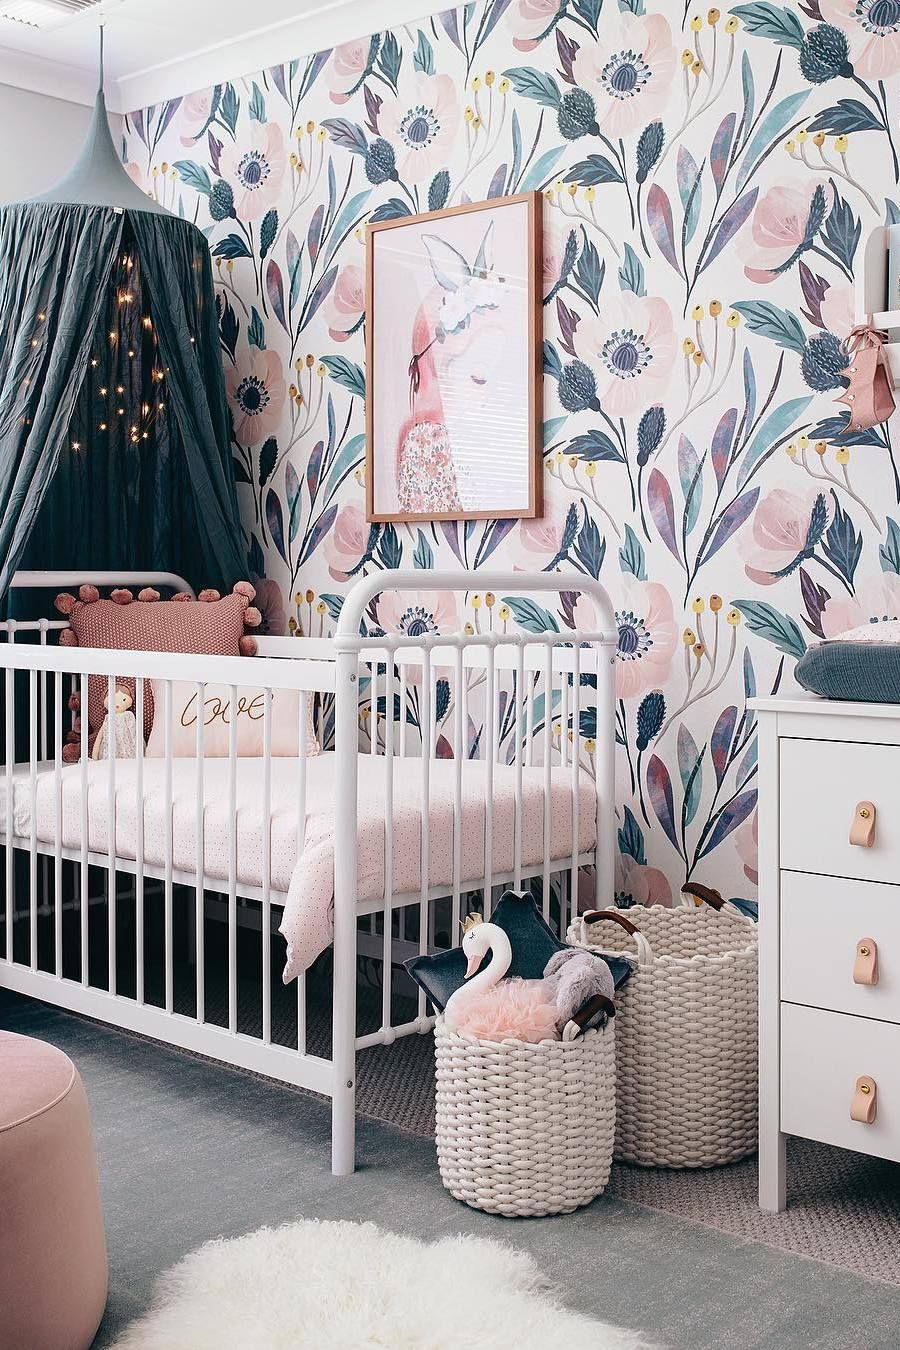 Tarina Lyell On Instagram: U201cThe Nursery 🎀 U2022 U2022 U2022 U2022 U2022 When I Got Given The  Brief Of Bold Colour In This Display Home, I Knew I Wanted To Use This ...